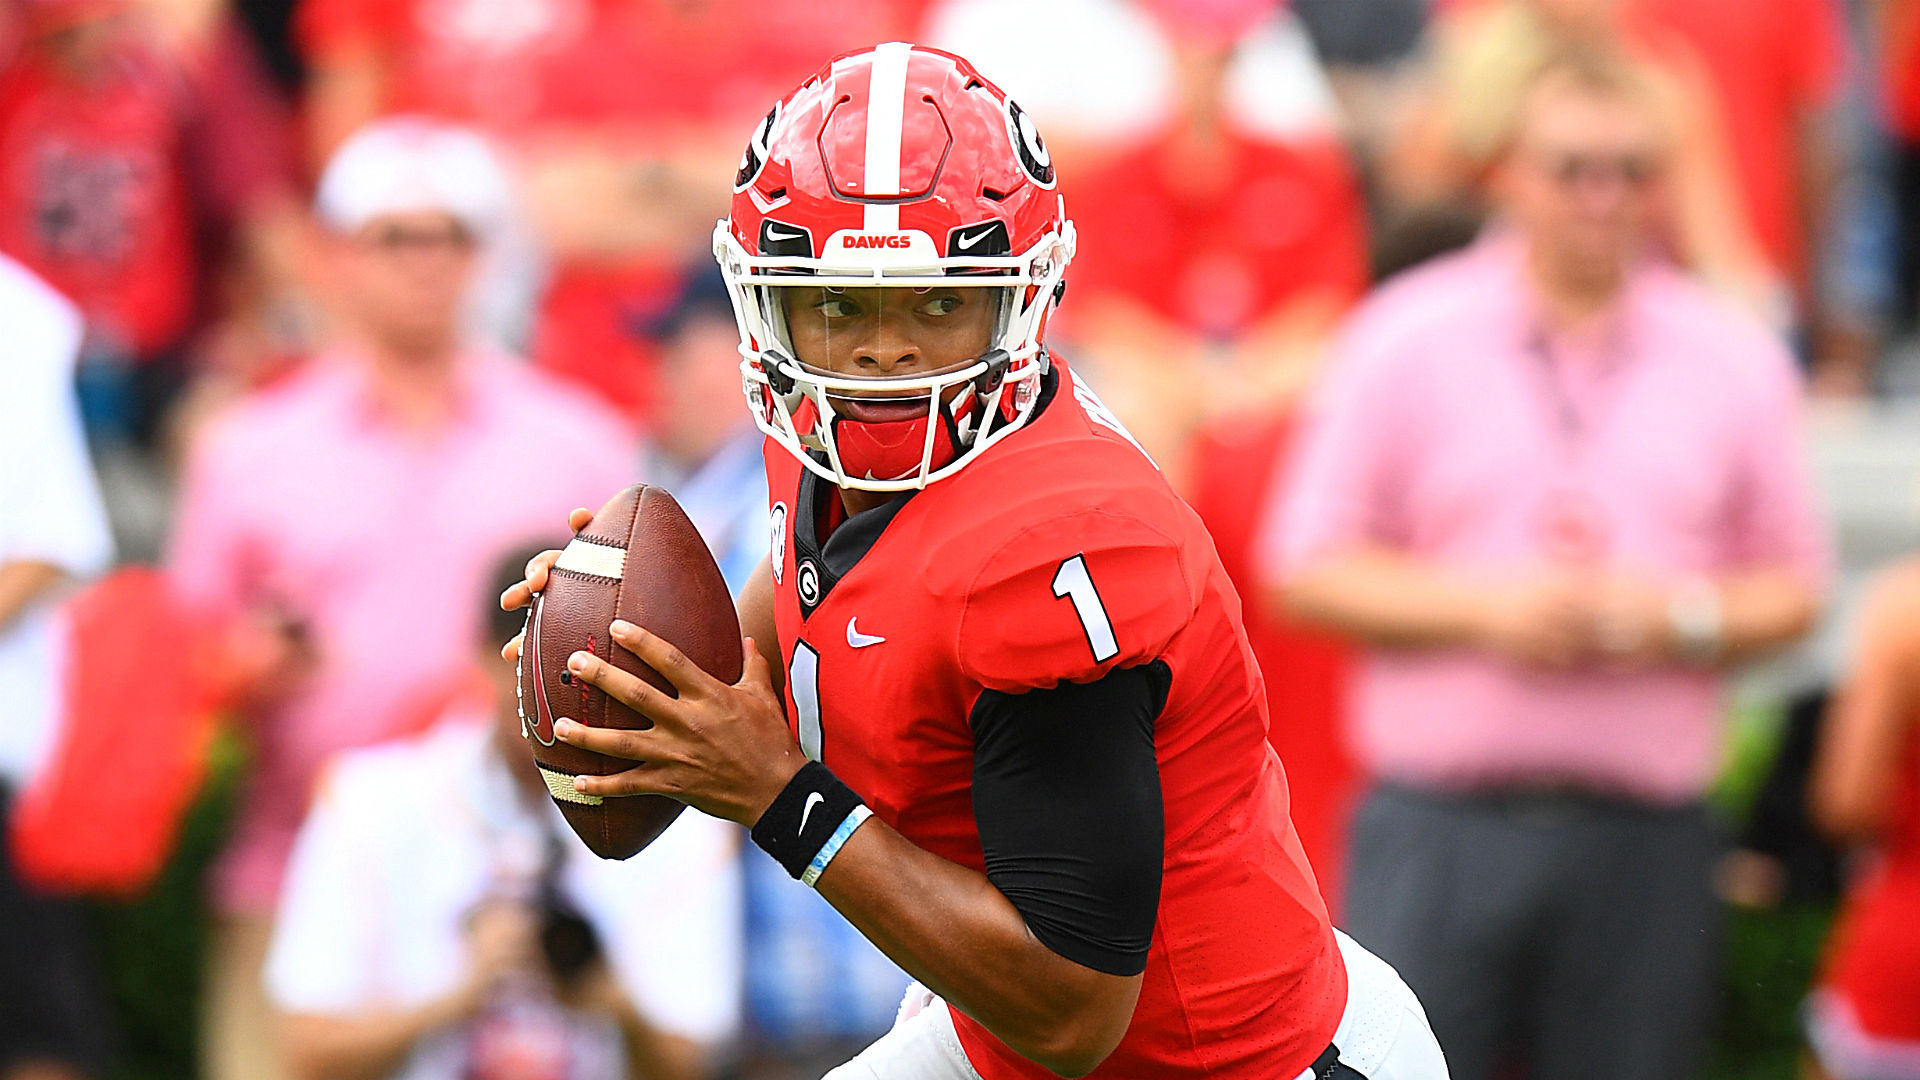 Georgia transfer QB Justin Fields to seek 2019 eligibility at Ohio State